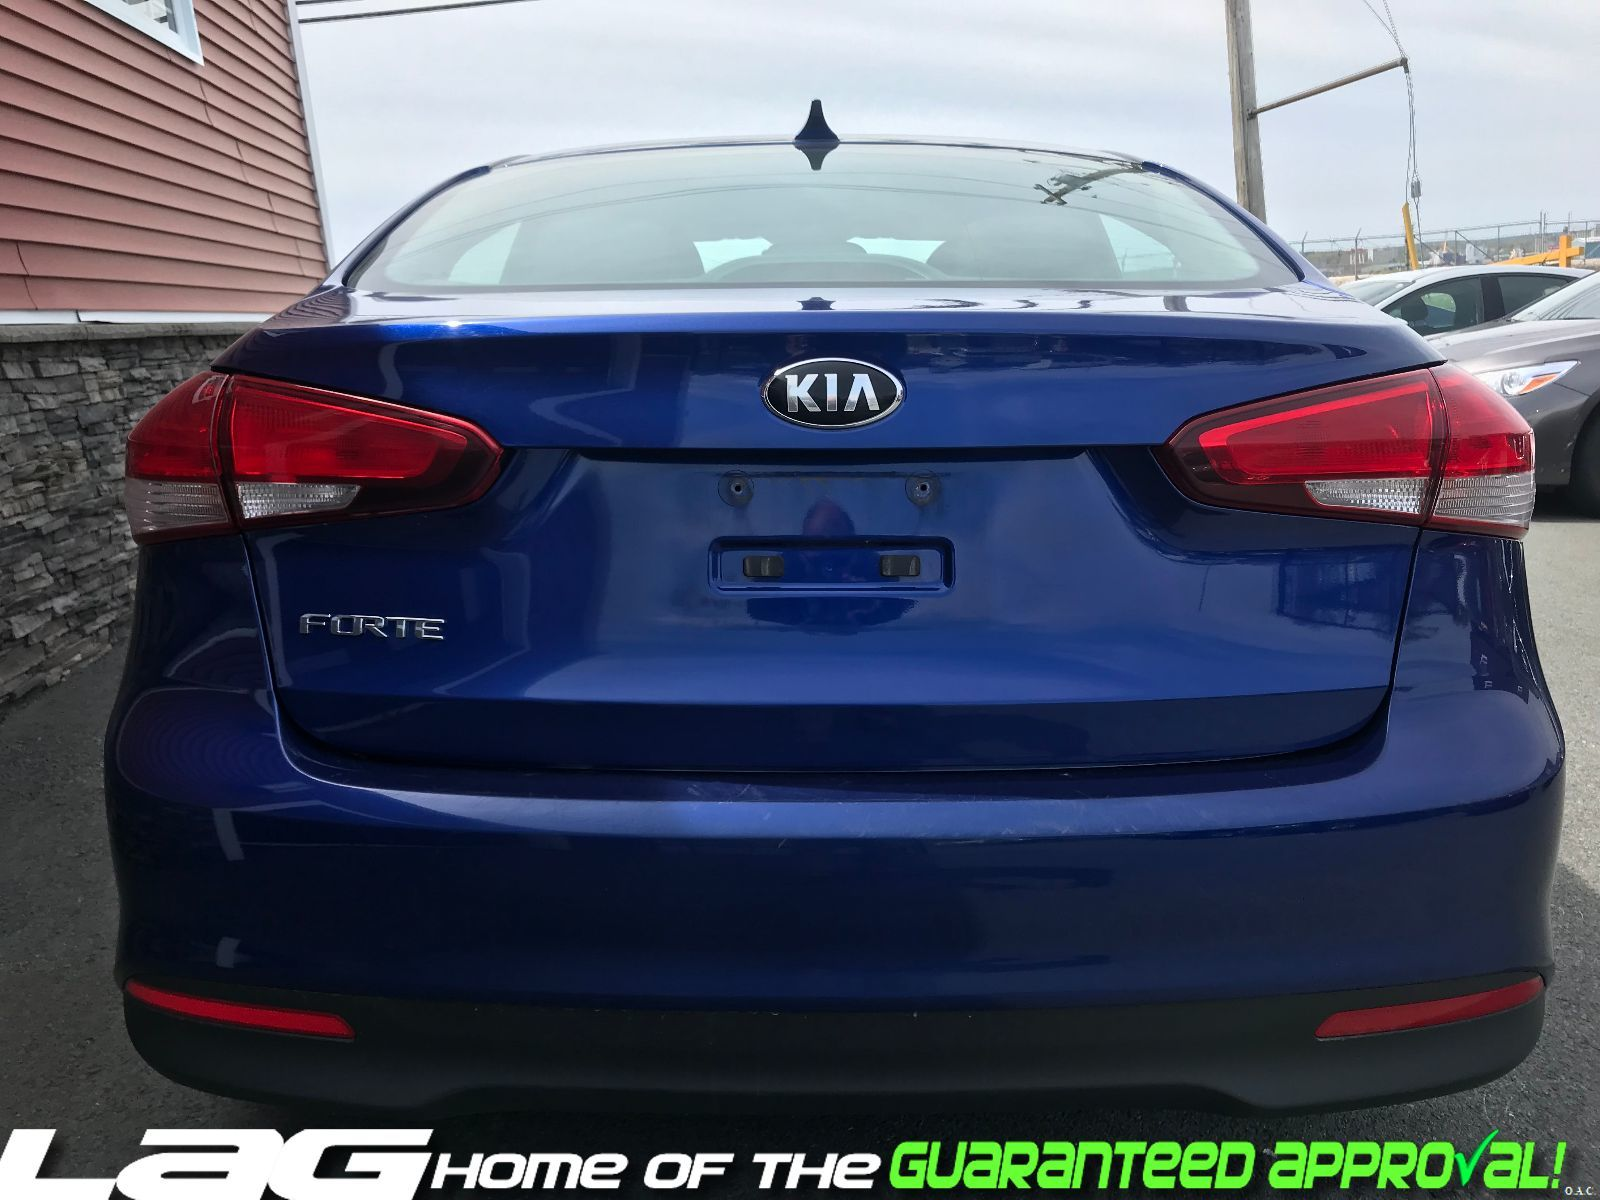 kia auto img express koup product forte buy usa snellville sales for trade sell sale